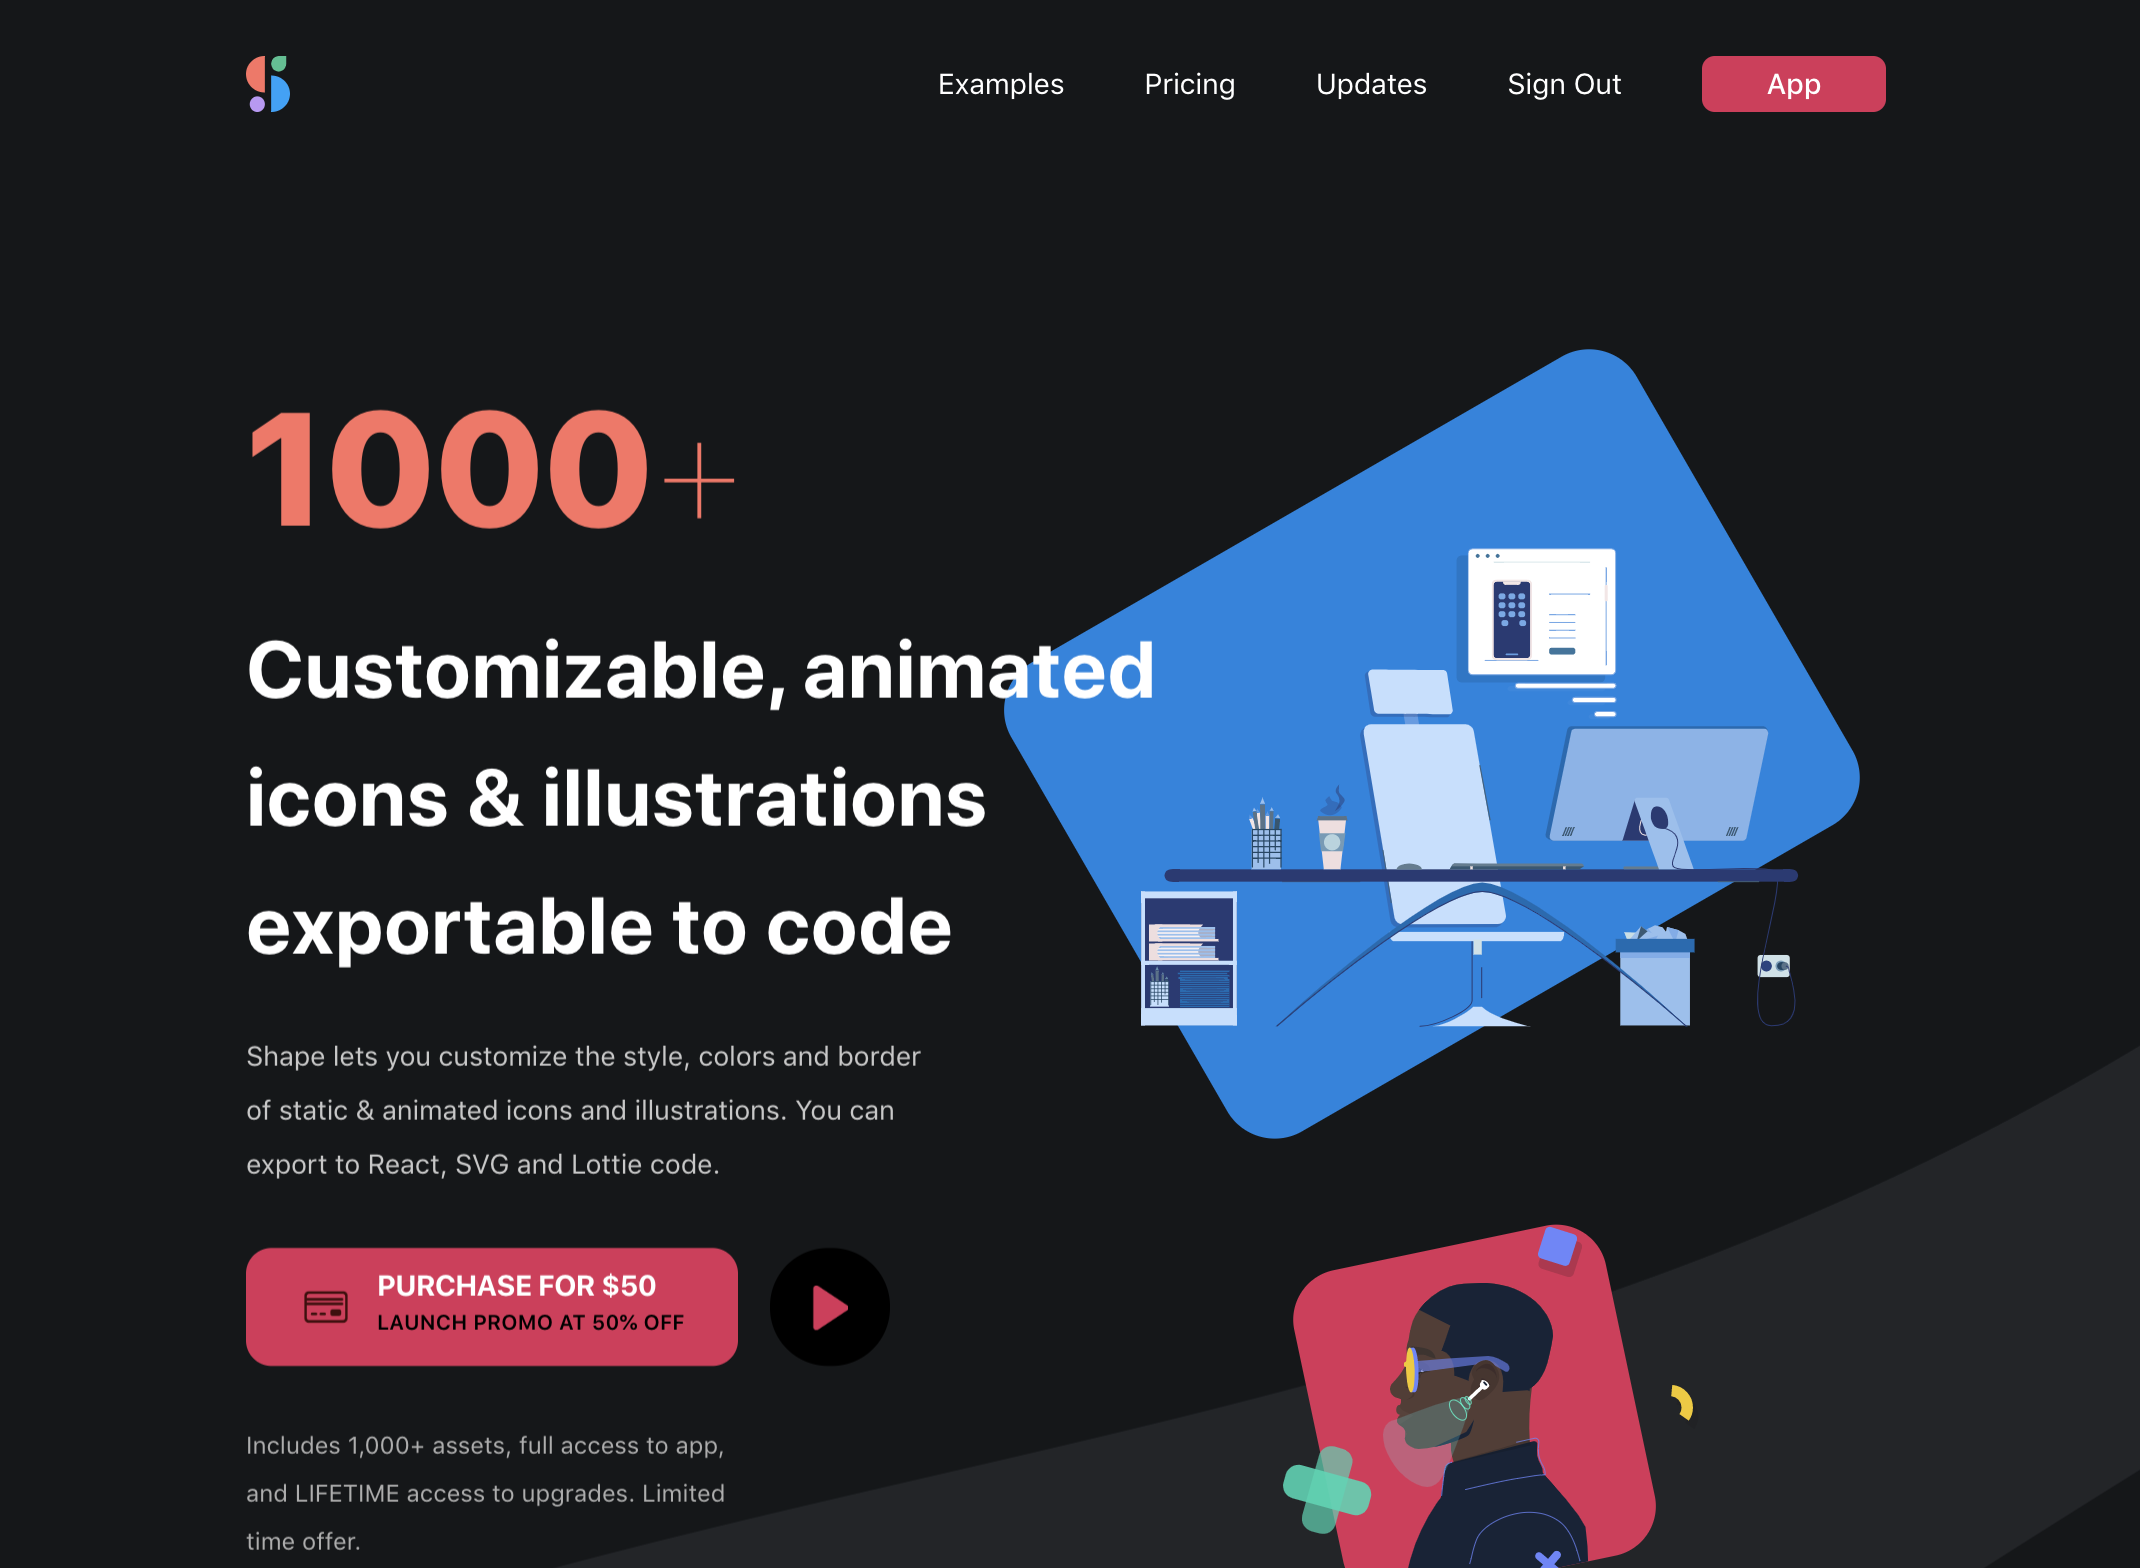 1000+ Customizable, Animated Icons & Illustrations. You